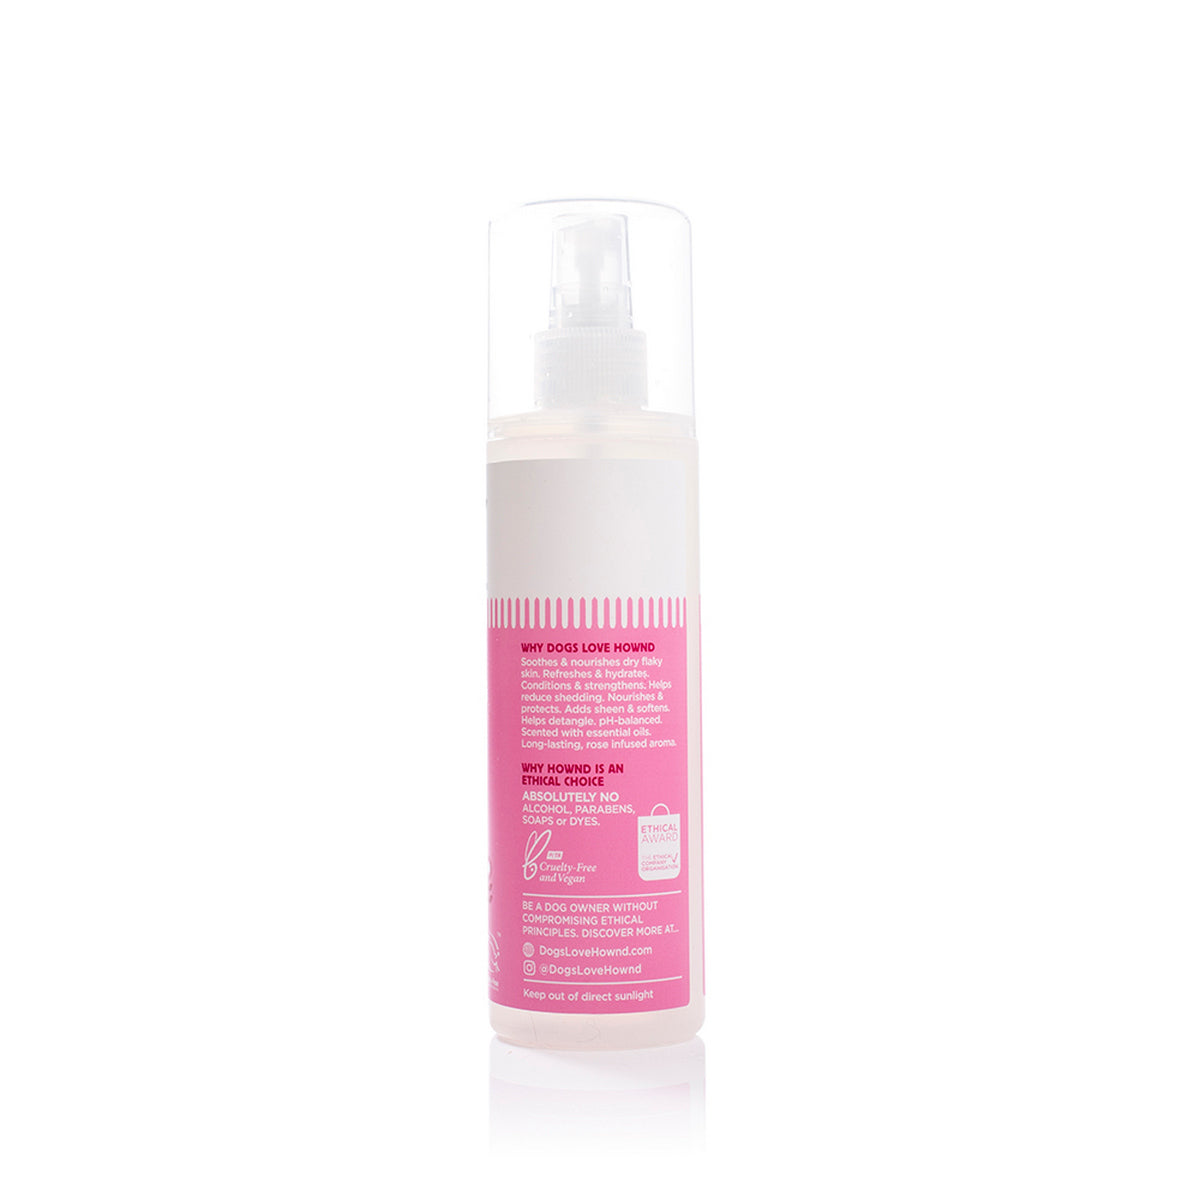 Got An Itch? Refreshing Body Mist (250ml) - Hownd